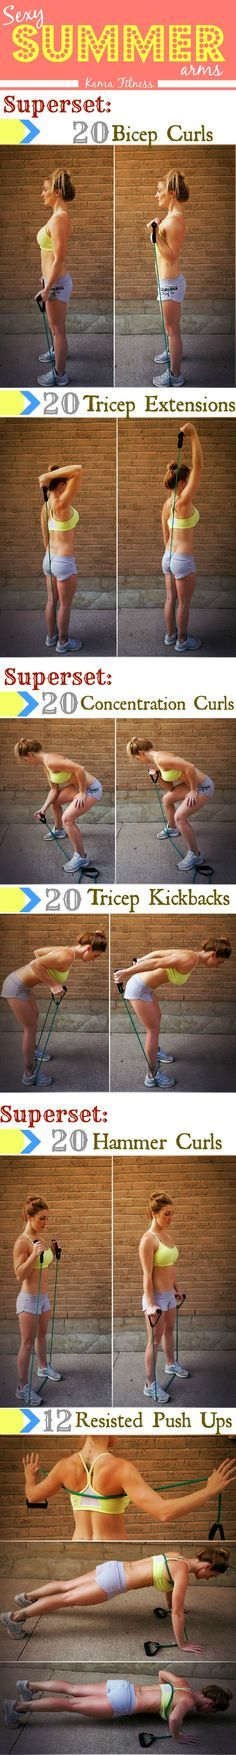 This workout is going to enhance your arms so you can feel confident while wearing that tank top of yours. Or bikini, you know. & guys, I know you like arm workouts so here you go. Switch up your daily routine and add in a little resistance to enhance...